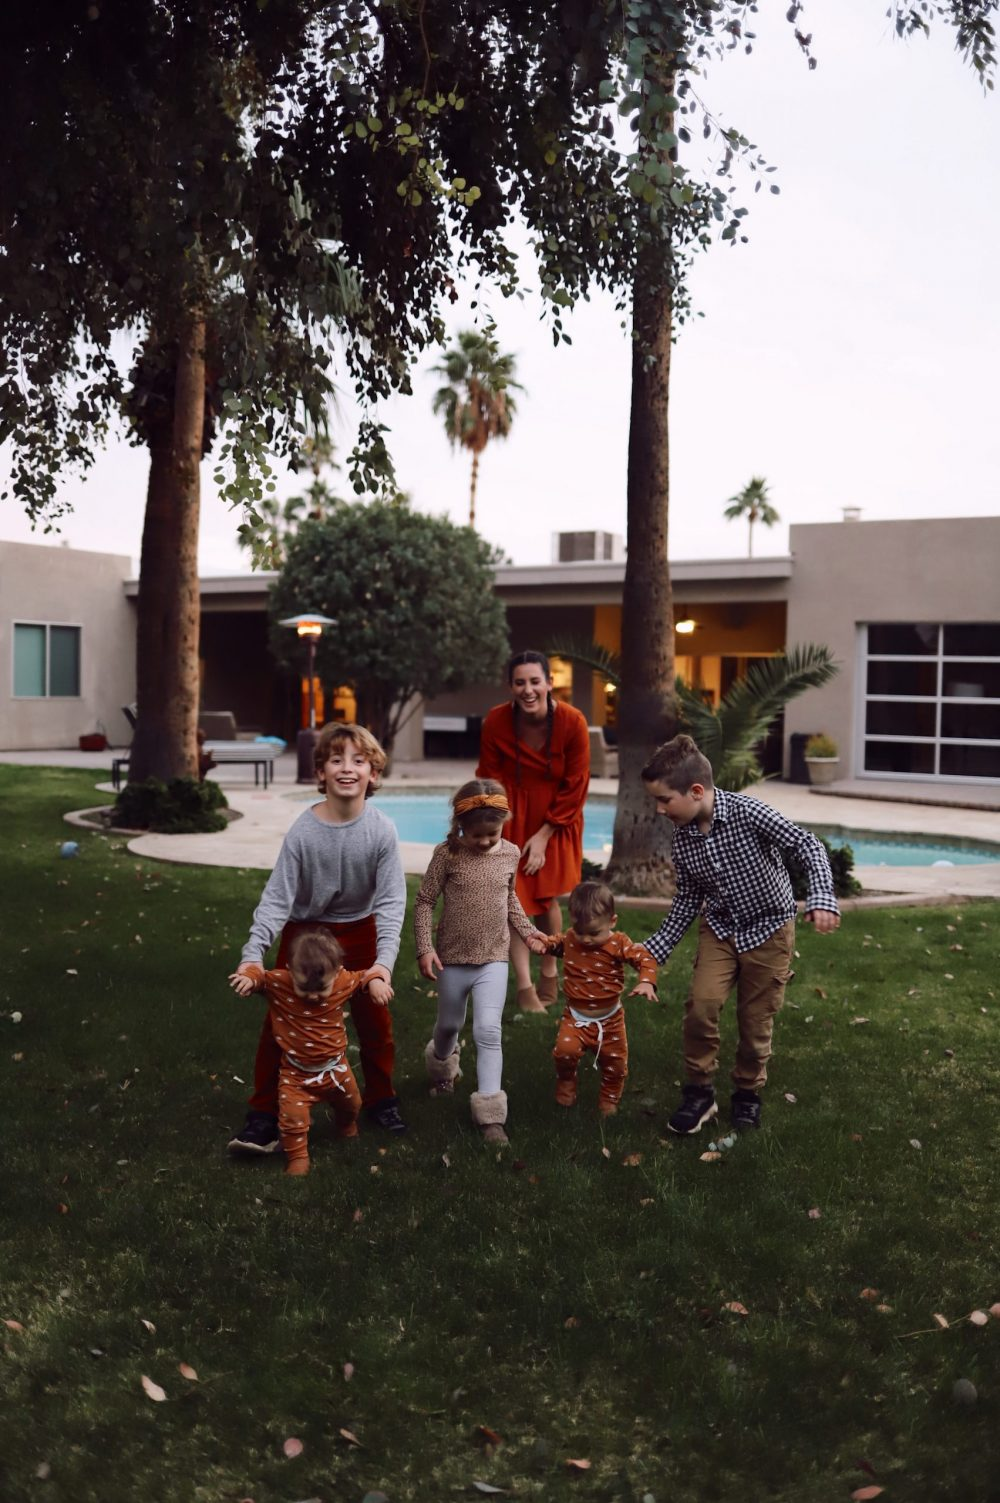 One of the Best Secret Winter Sun Destinations, Scottsdale Arizona. Family-friendly property rental at Bella's Villa Voltaire. |Guide by popular Florida travel blog, Fresh Mommy Blog: image of a family standing outside at Bella's Villa Voltaire.